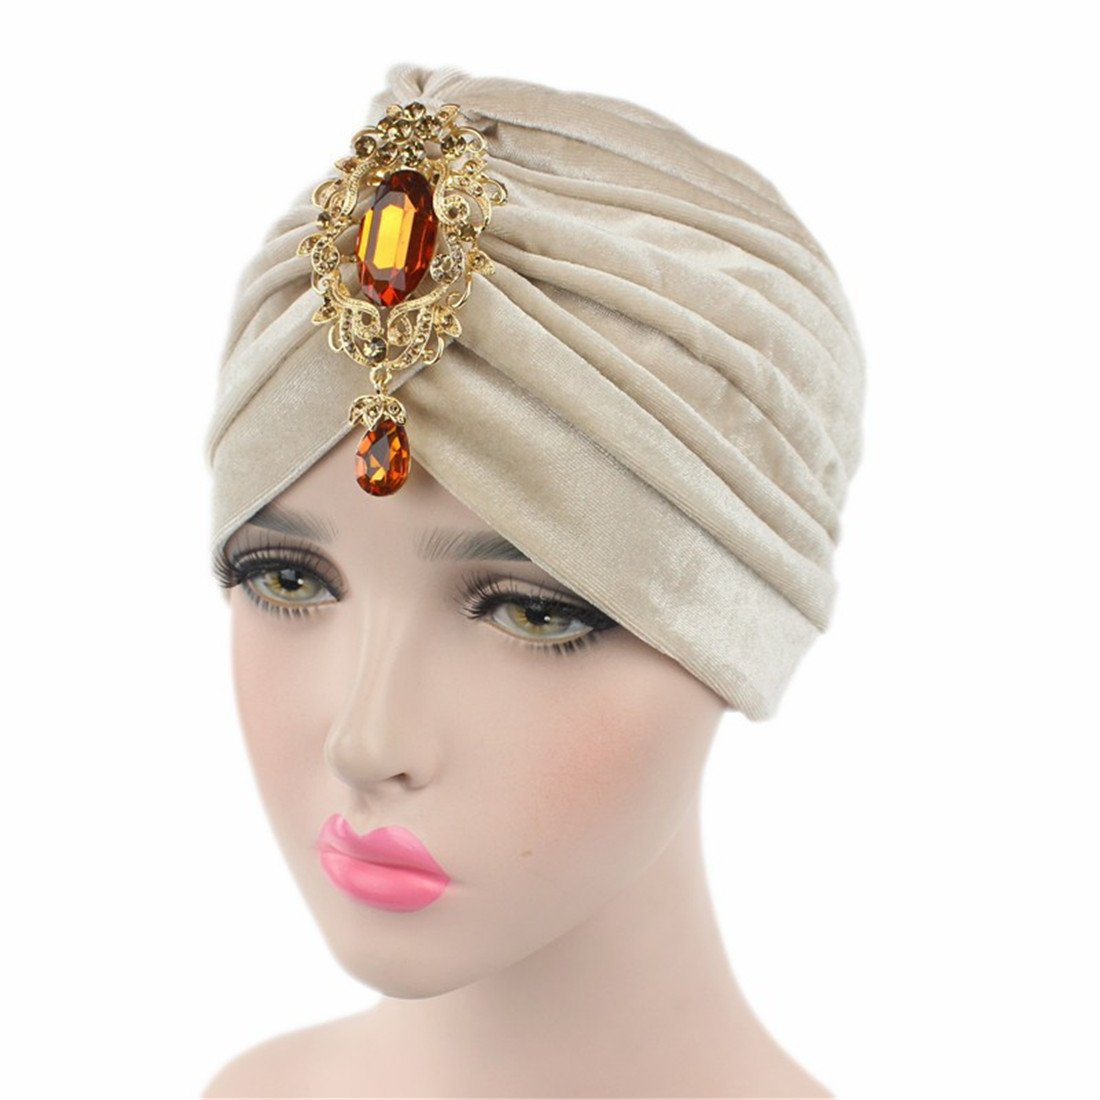 Qhome Gorgeous Soft Velvet Turban Velour Hair Cover Headwrap Hijab Hat with Gold Jewelry Pendant